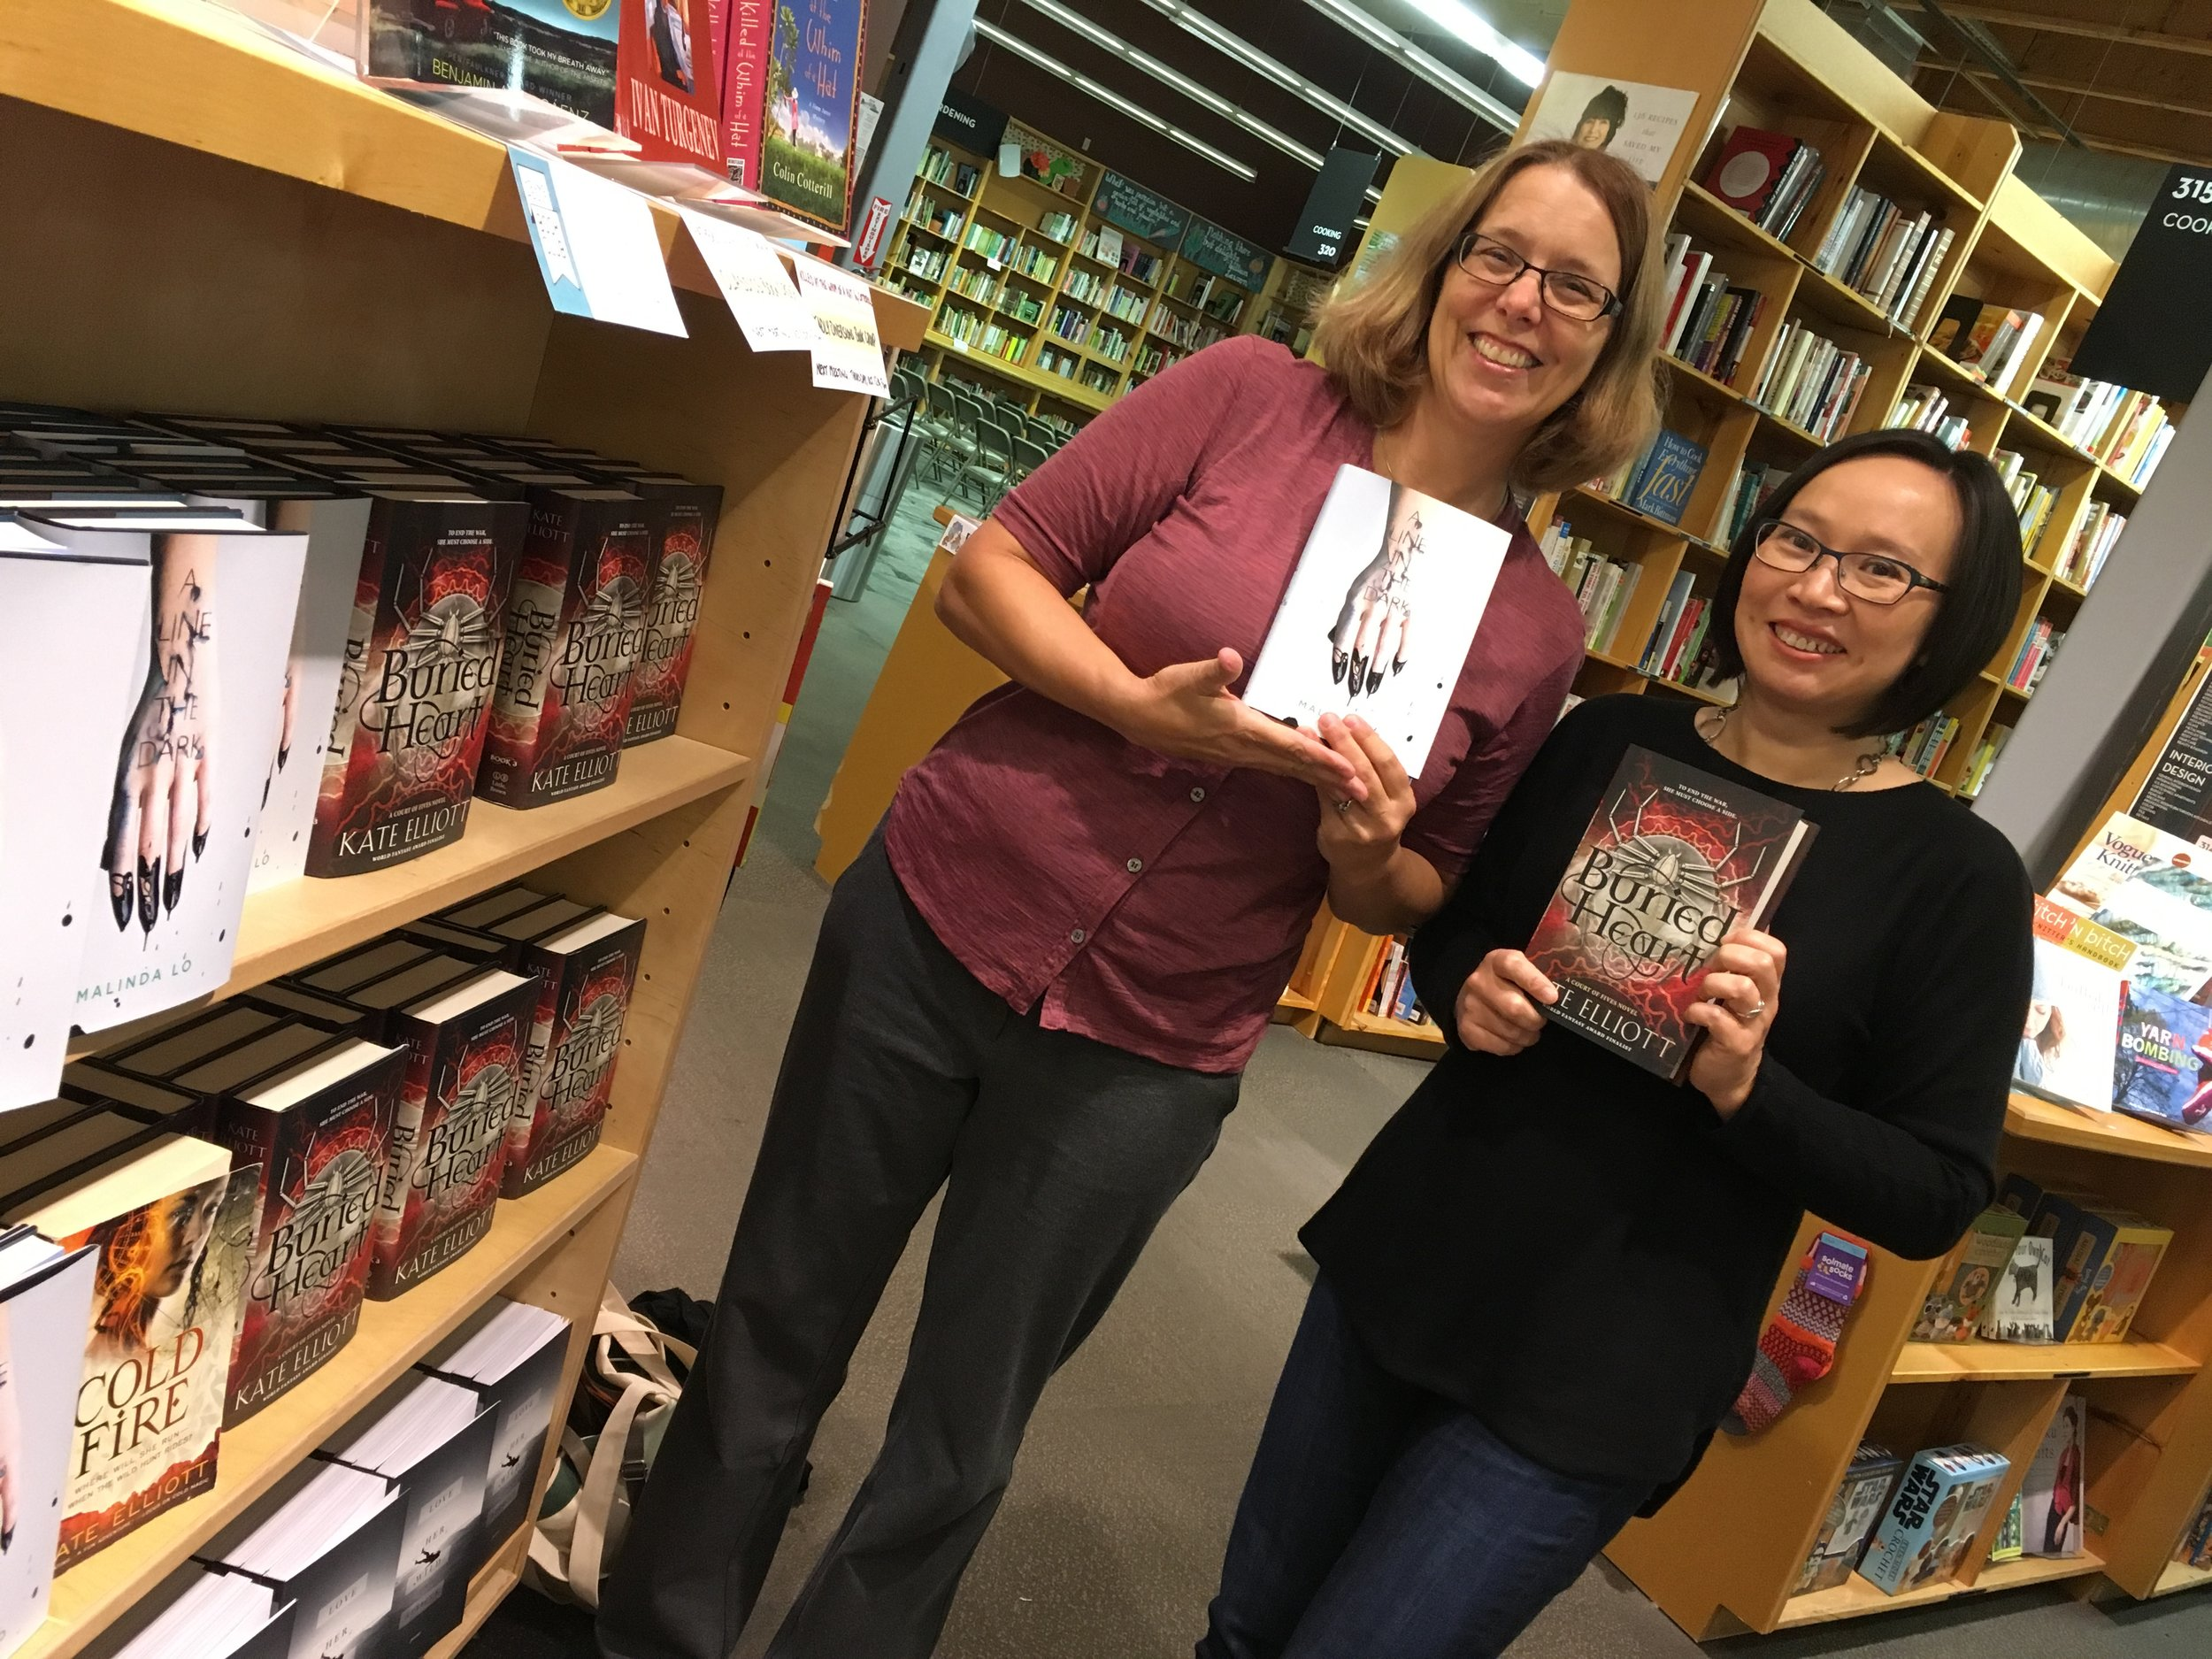 author kate elliott and me at powell's in beaverton, oregon on oct. 20, 2017